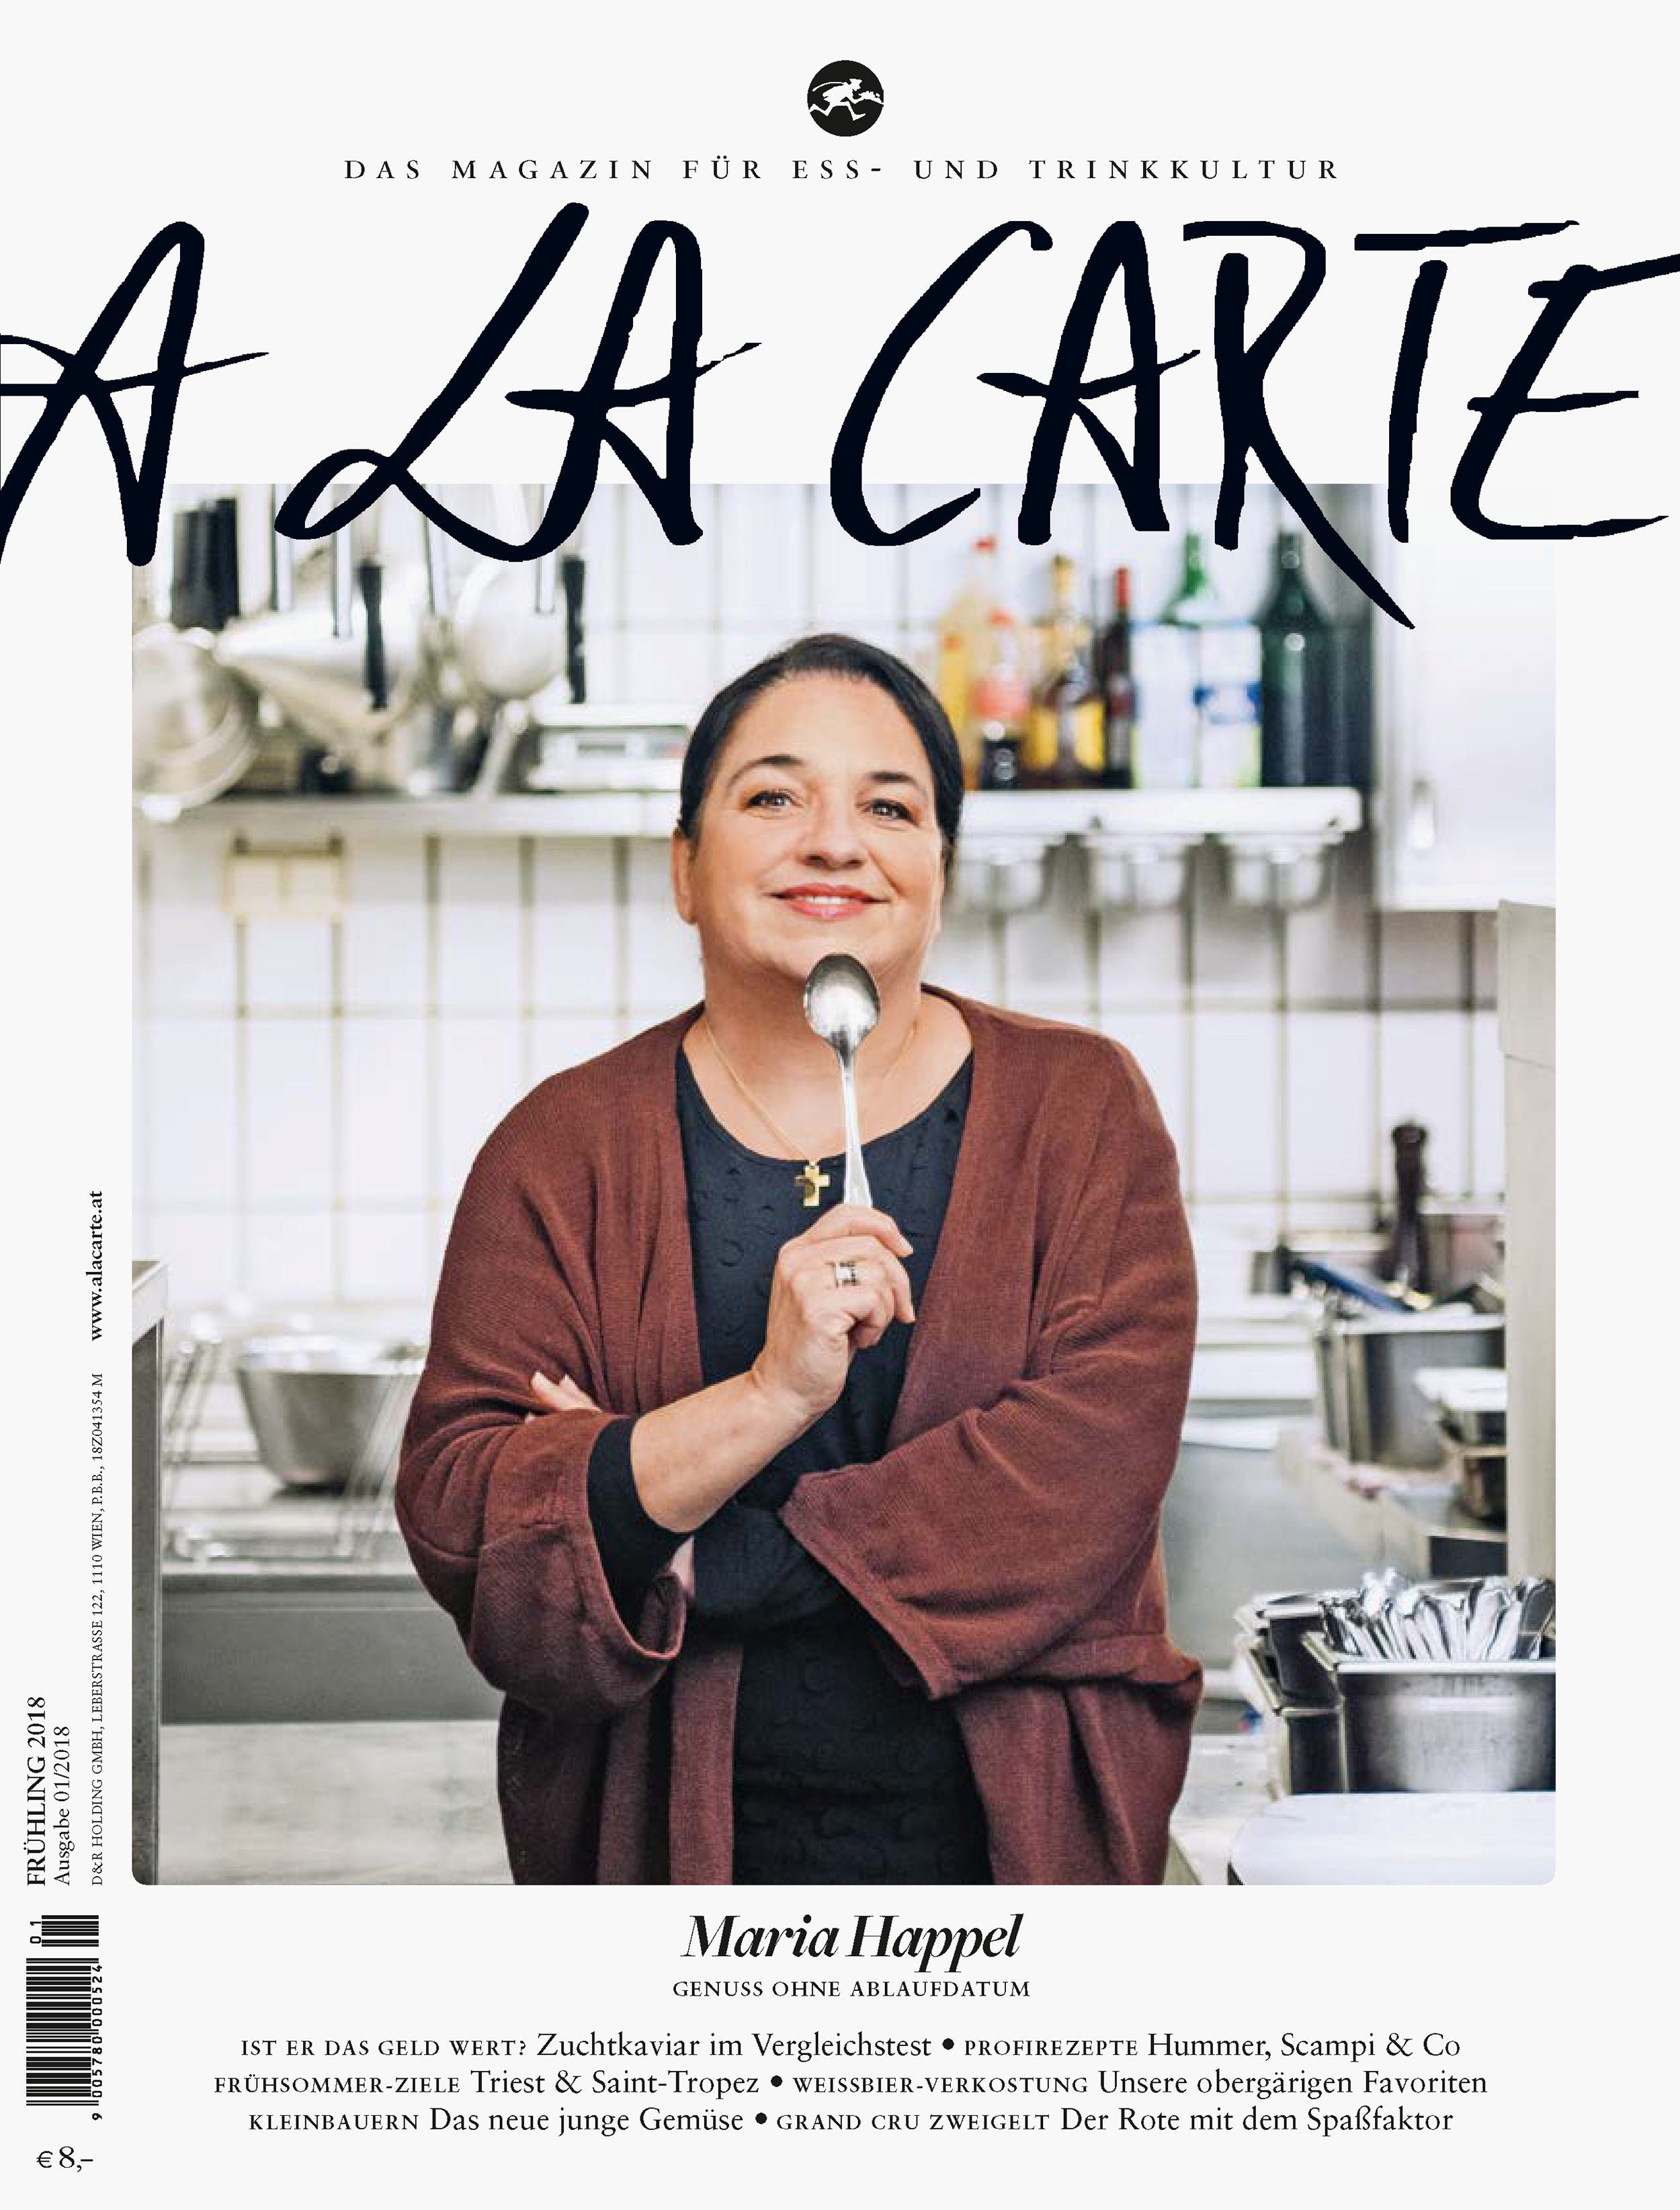 Coverstory mit Maria Happel / A LA CARTE